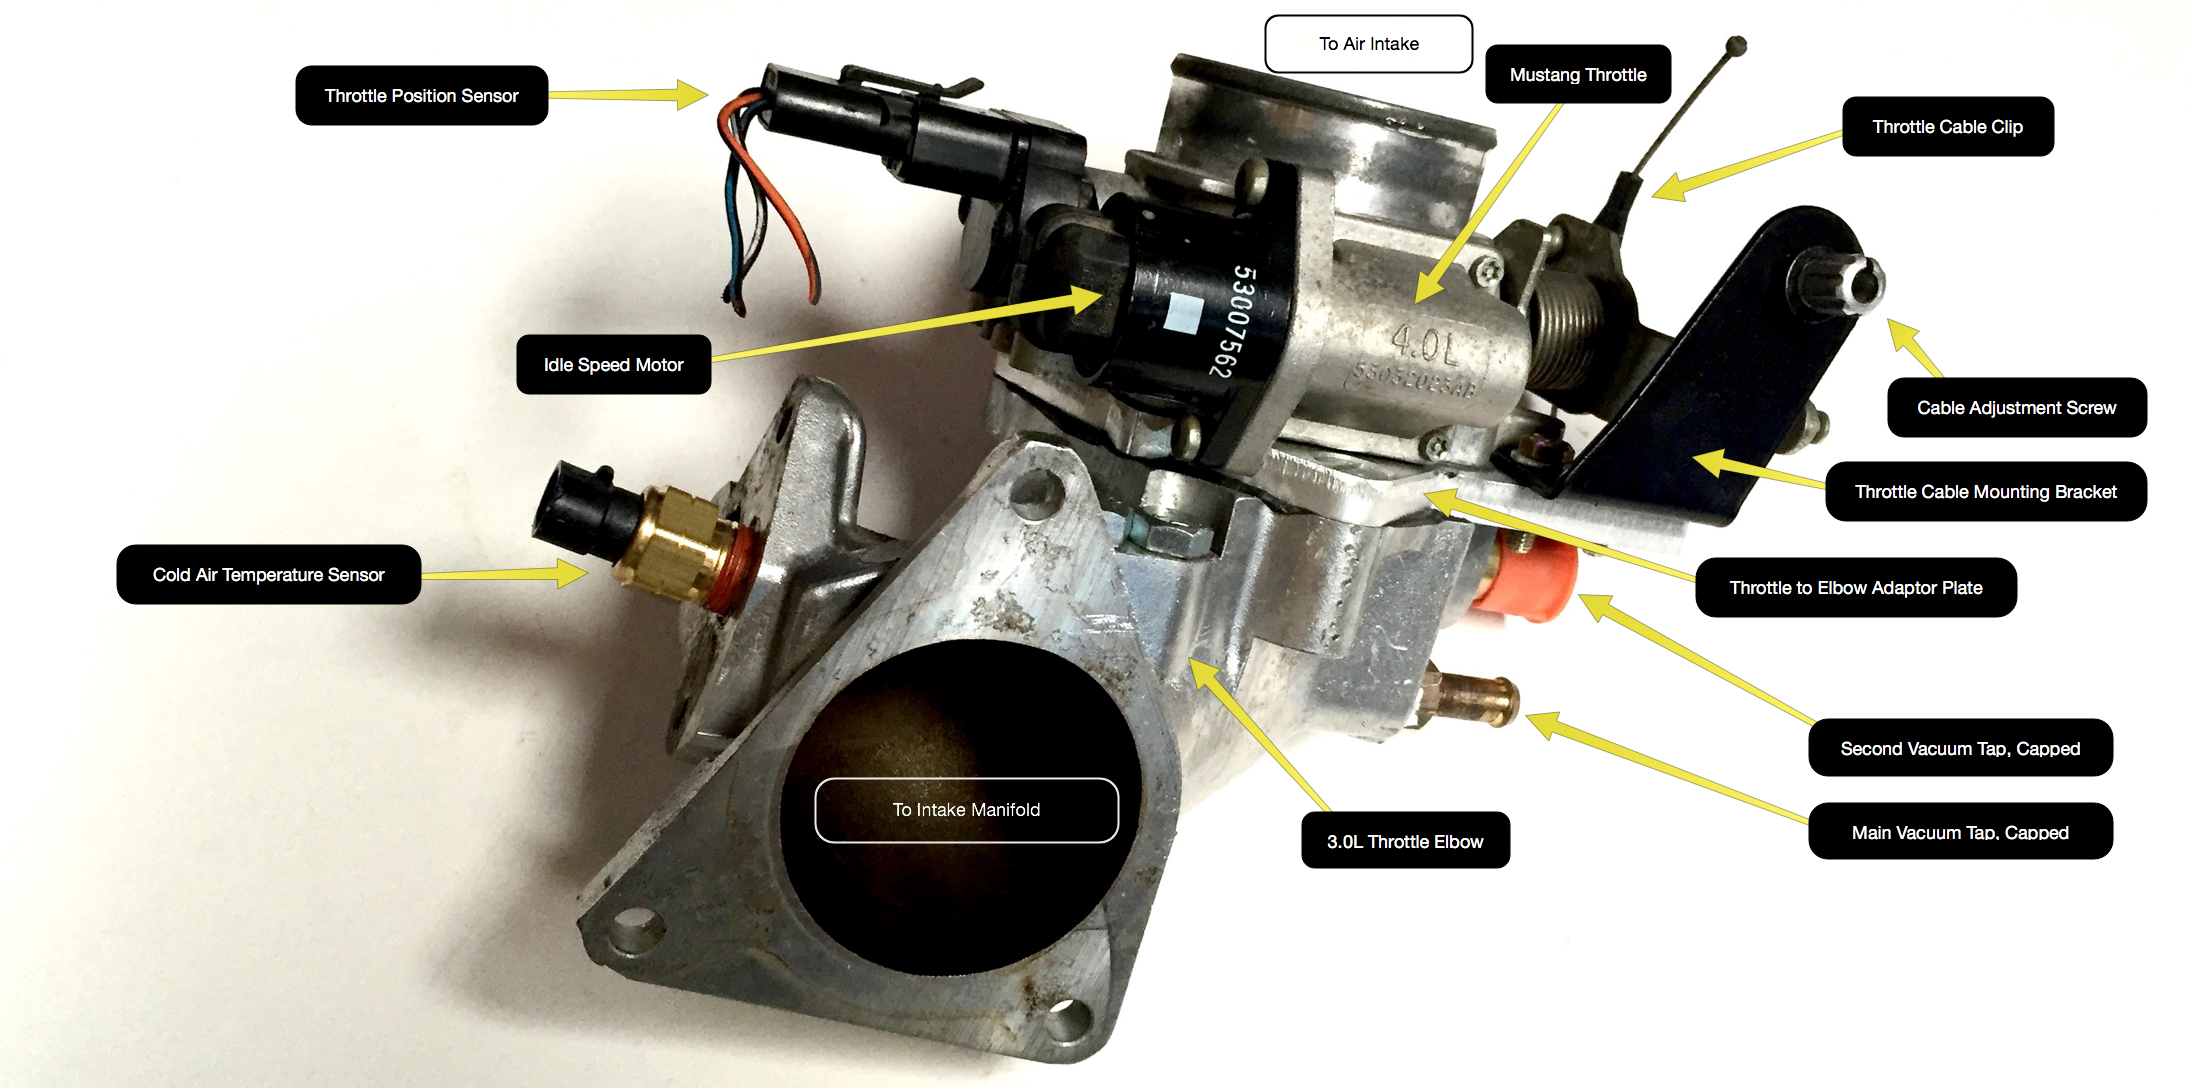 The throttle and installed components mounted on the elbow.